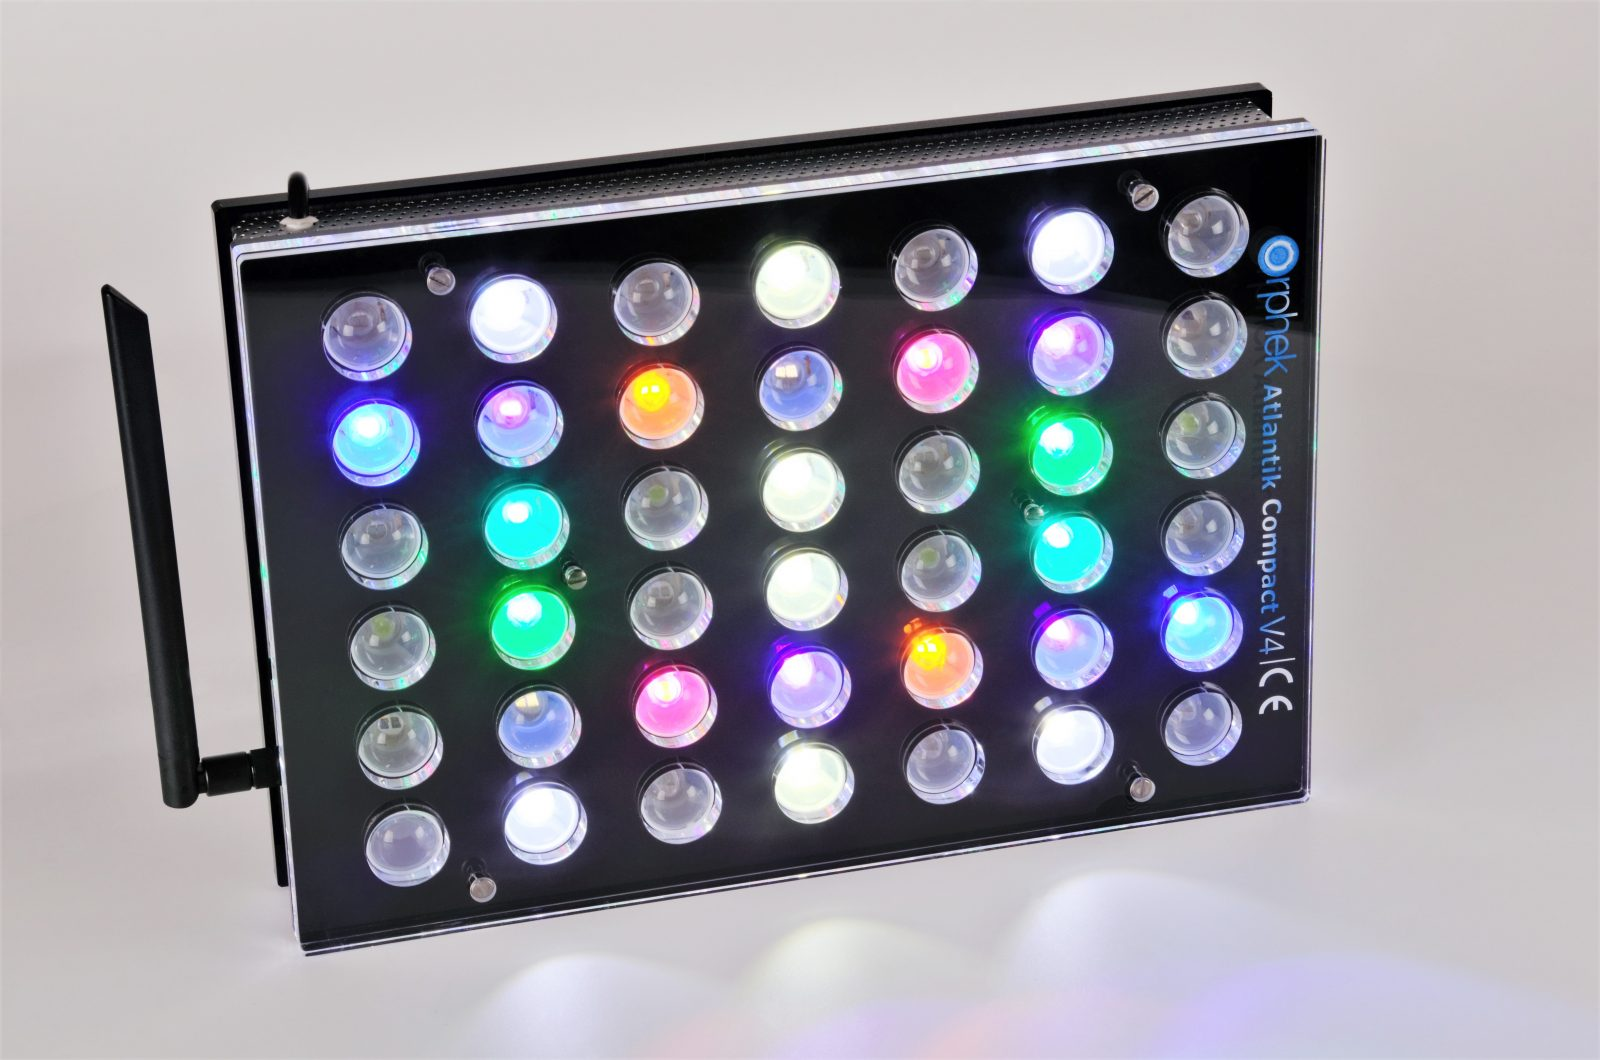 Orphek-Aquarium-Iluminación-LED-Atlantik -Compact-V4-light-on-channel 1 + 3 + 4